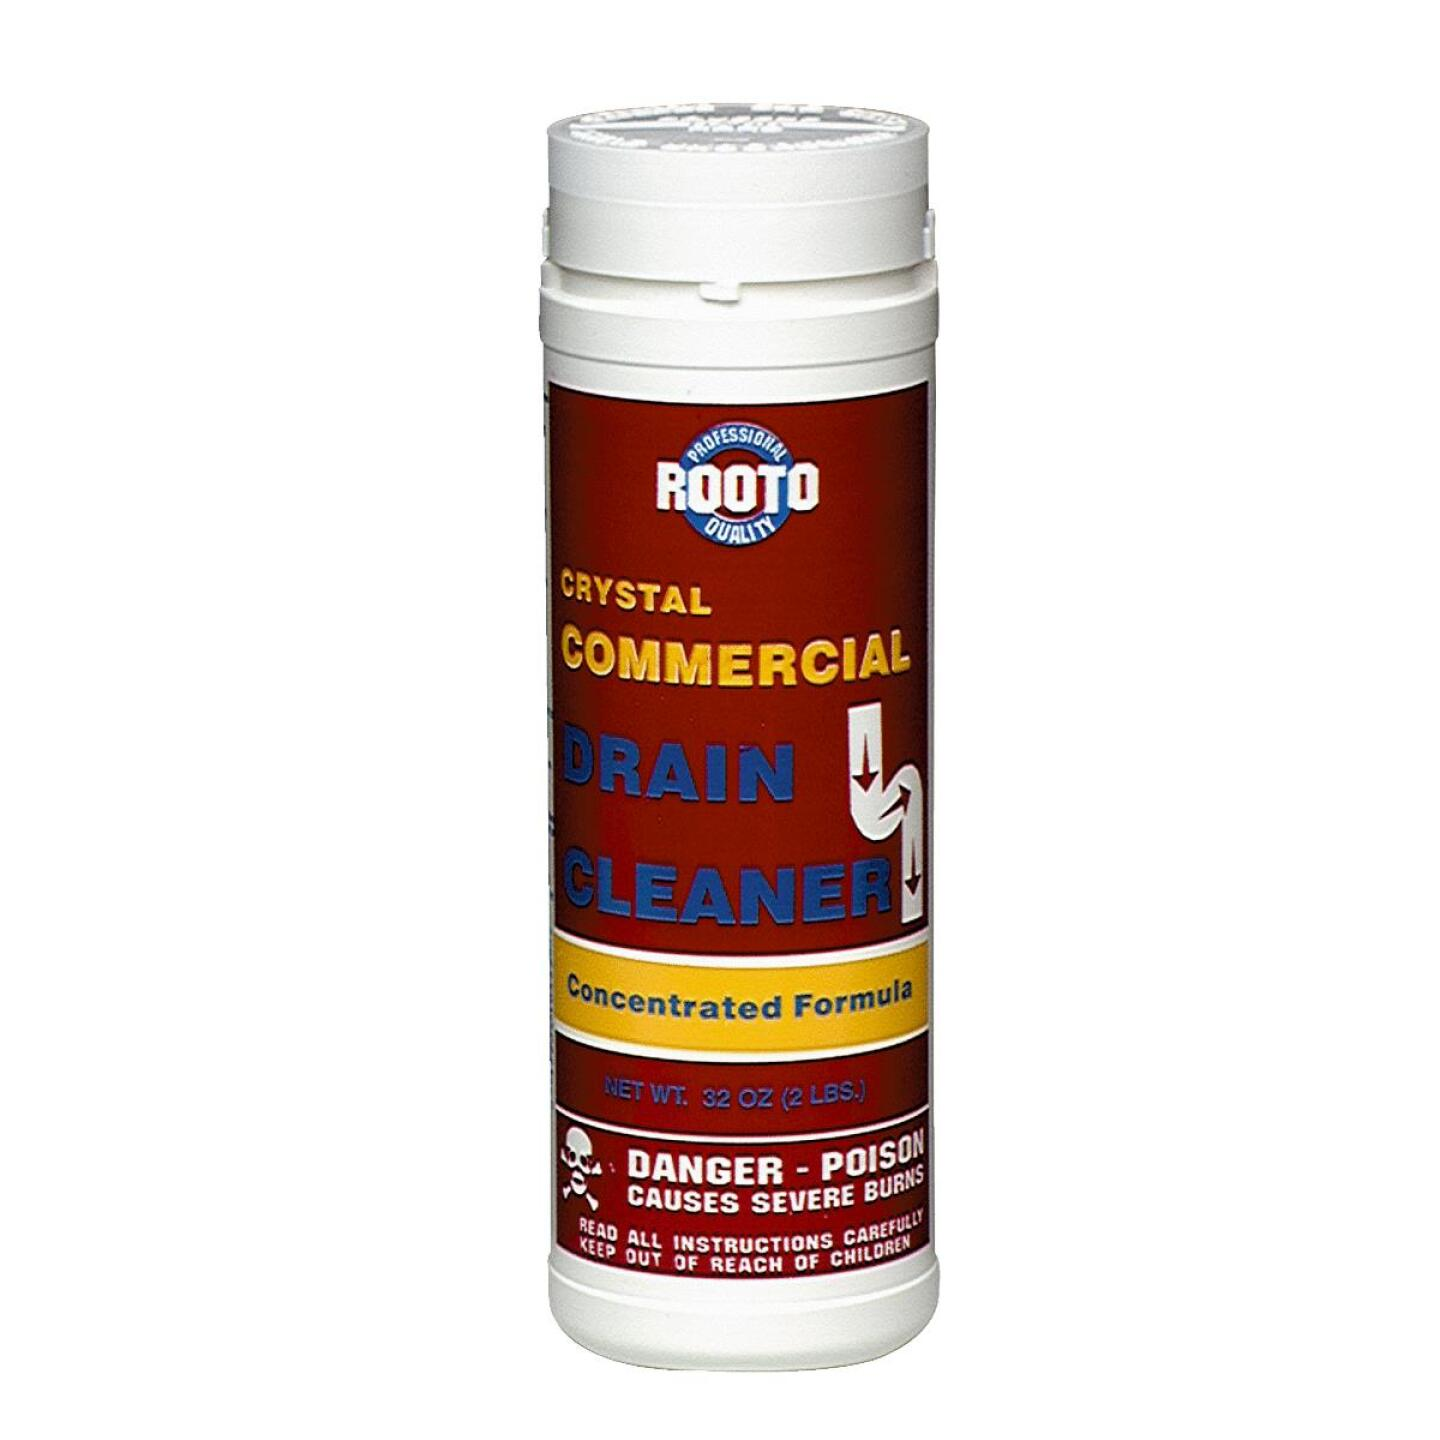 Rooto 2 Lb. Crystal Commercial Drain Cleaner  Image 1